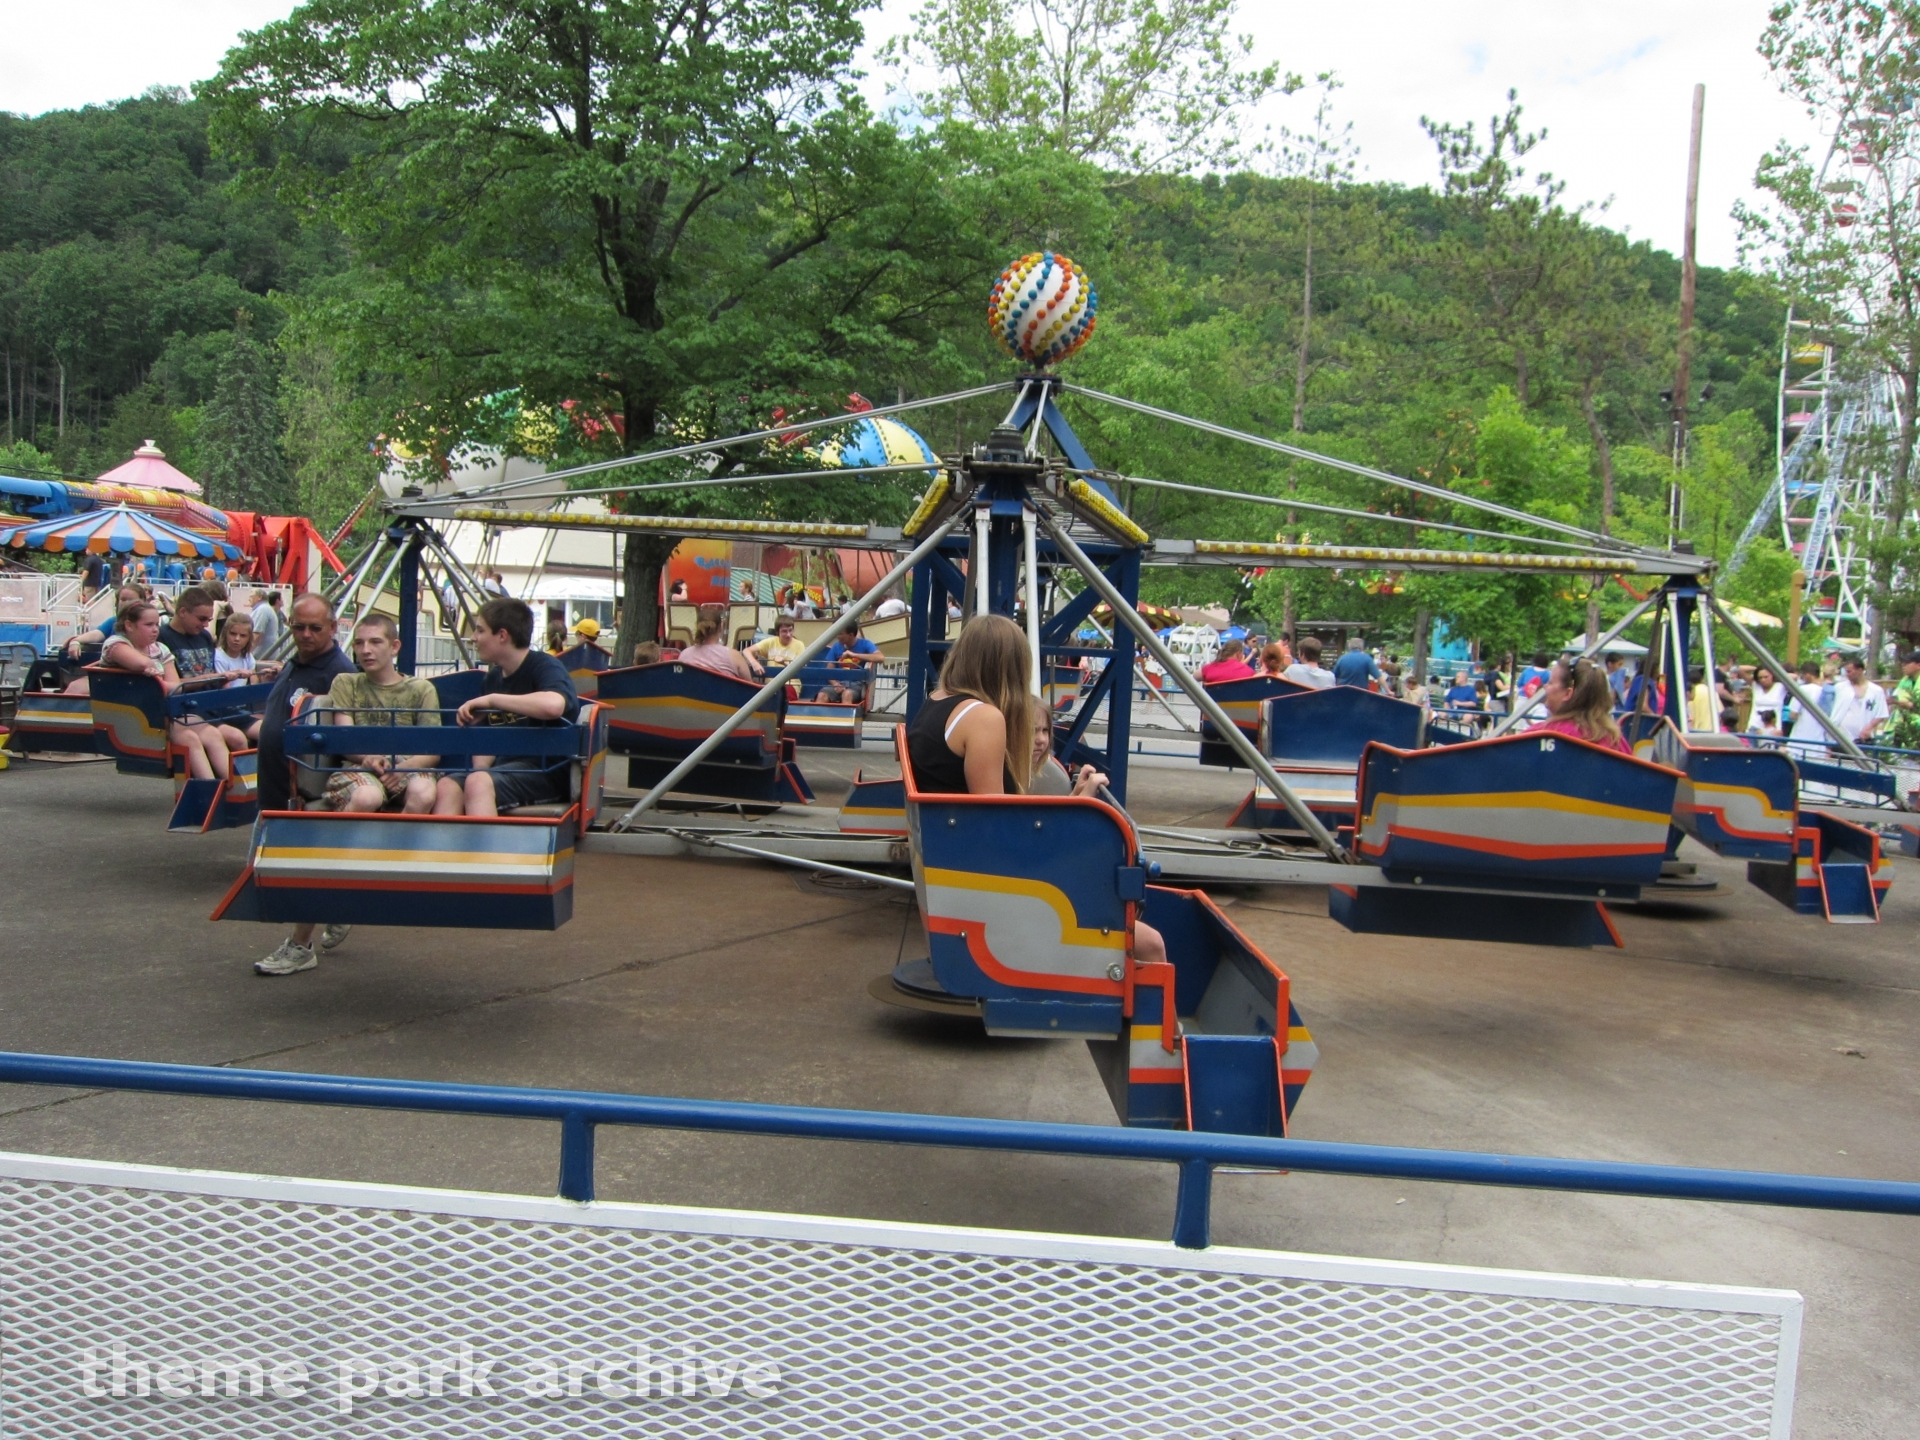 Merry Mixer at Knoebels Amusement Resort